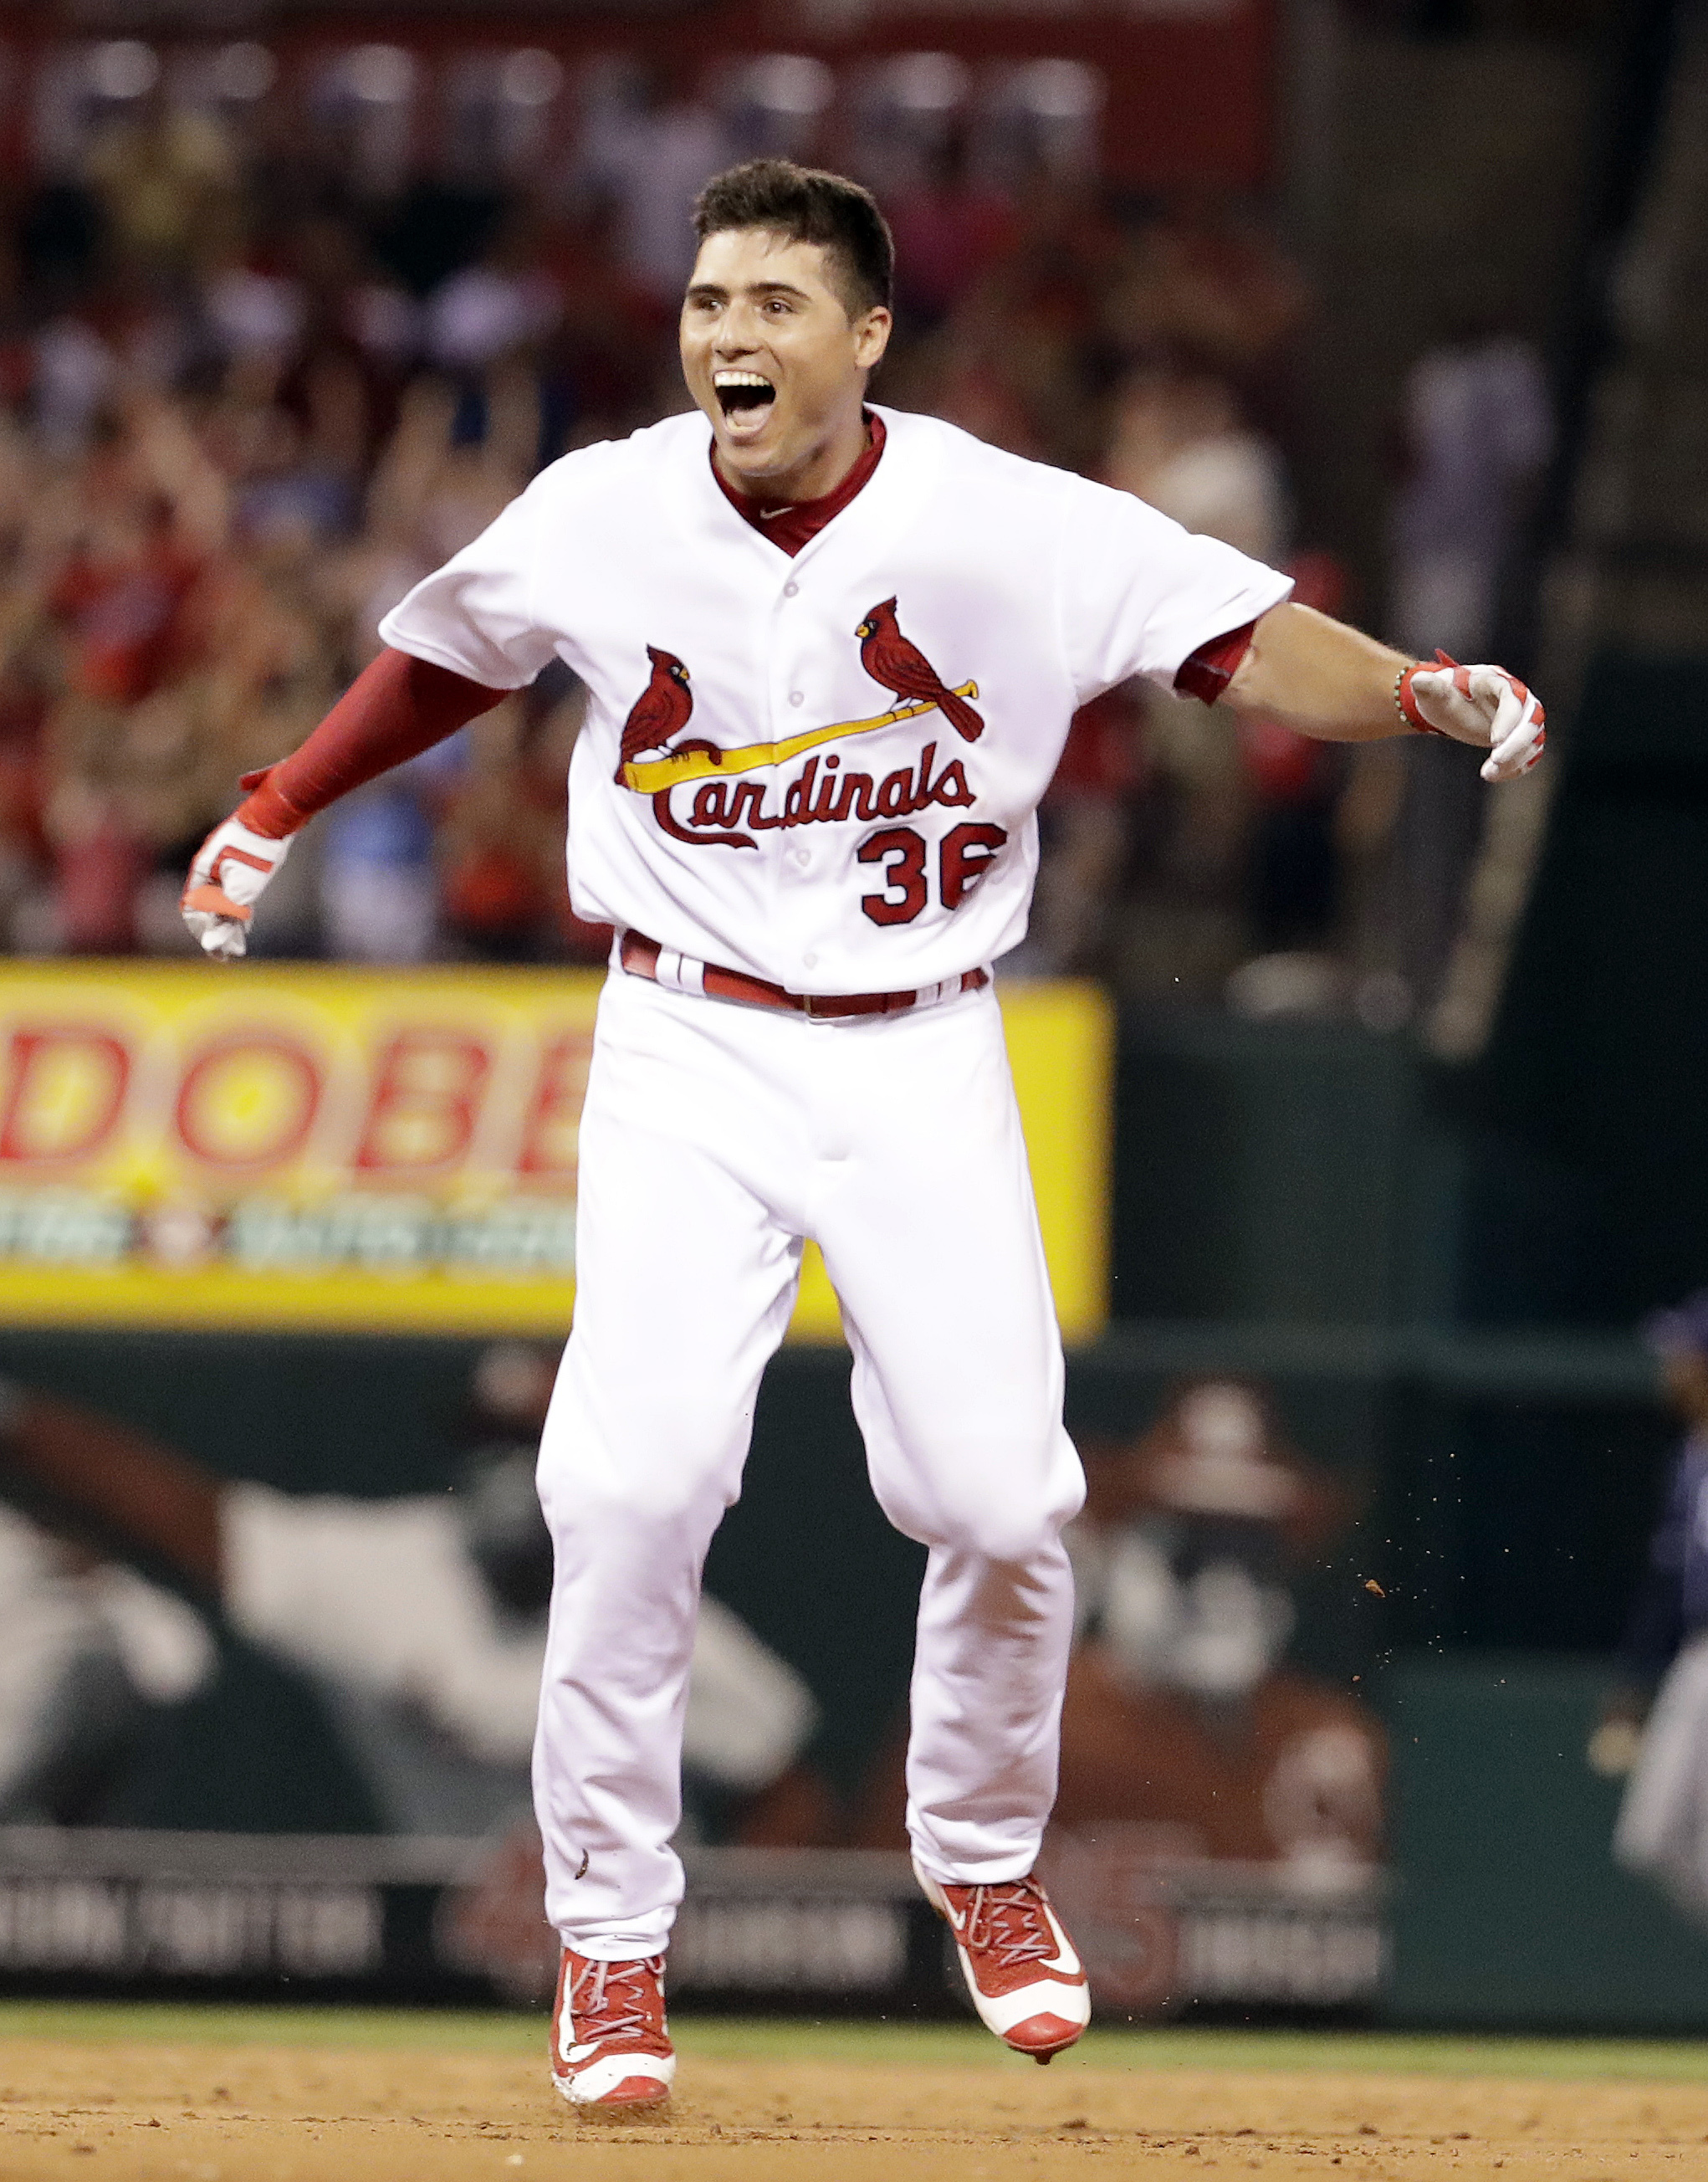 St. Louis Cardinals' Aledmys Diaz celebrates after hitting a walk-off single during the ninth inning of a baseball game against the San Diego Padres Thursday, July 21, 2016, in St. Louis. The Cardinals won 6-5. (AP Photo/Jeff Roberson)